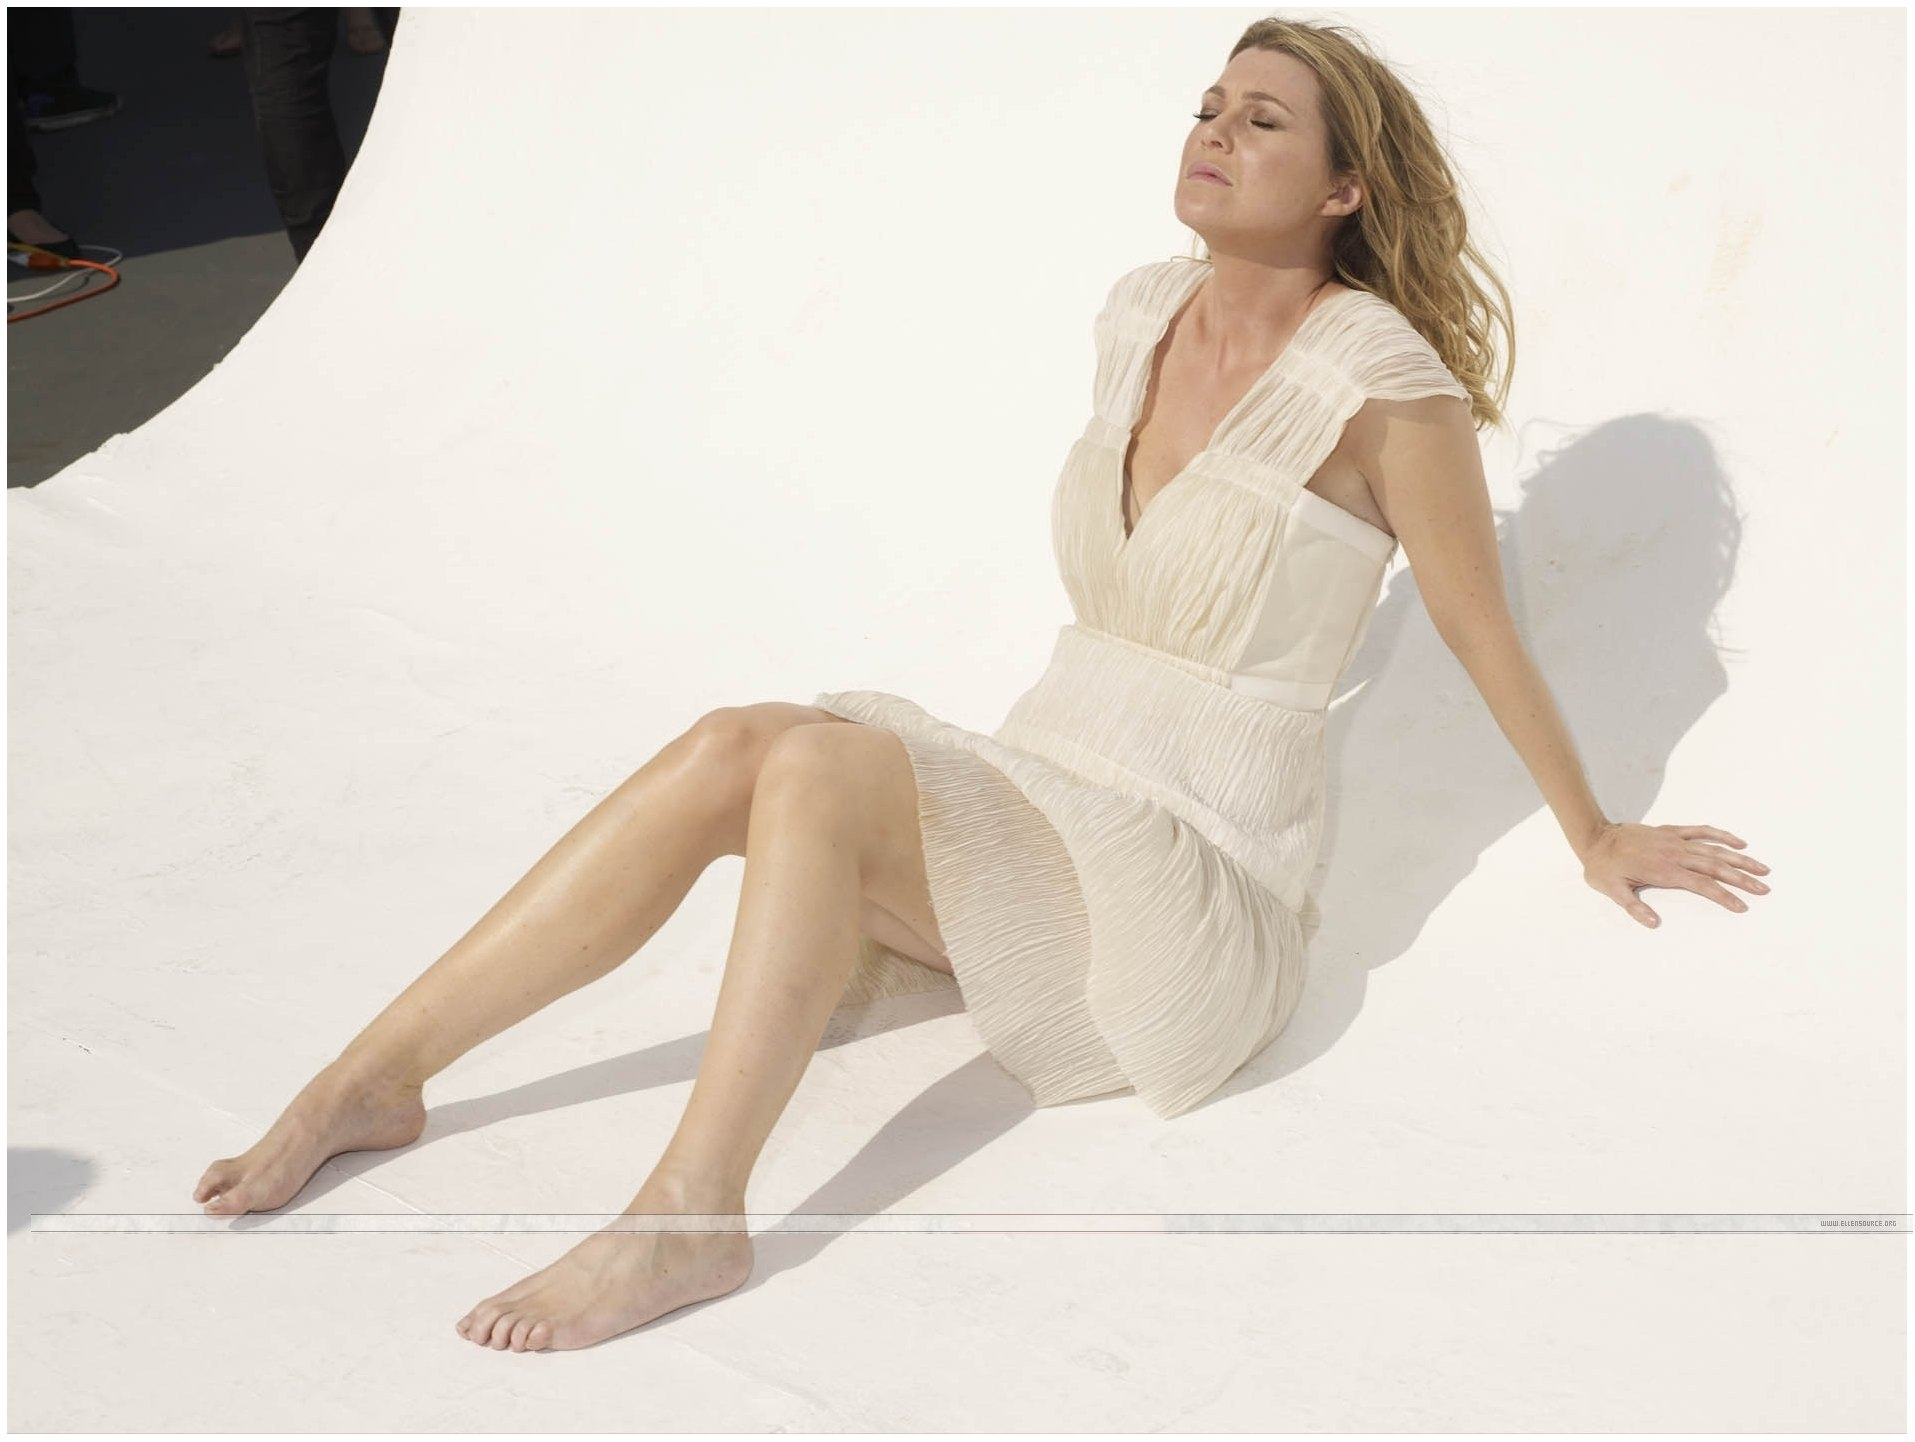 39 Hot Pictures Of Ellen Pompeo From Grey's Anatomy Will ...